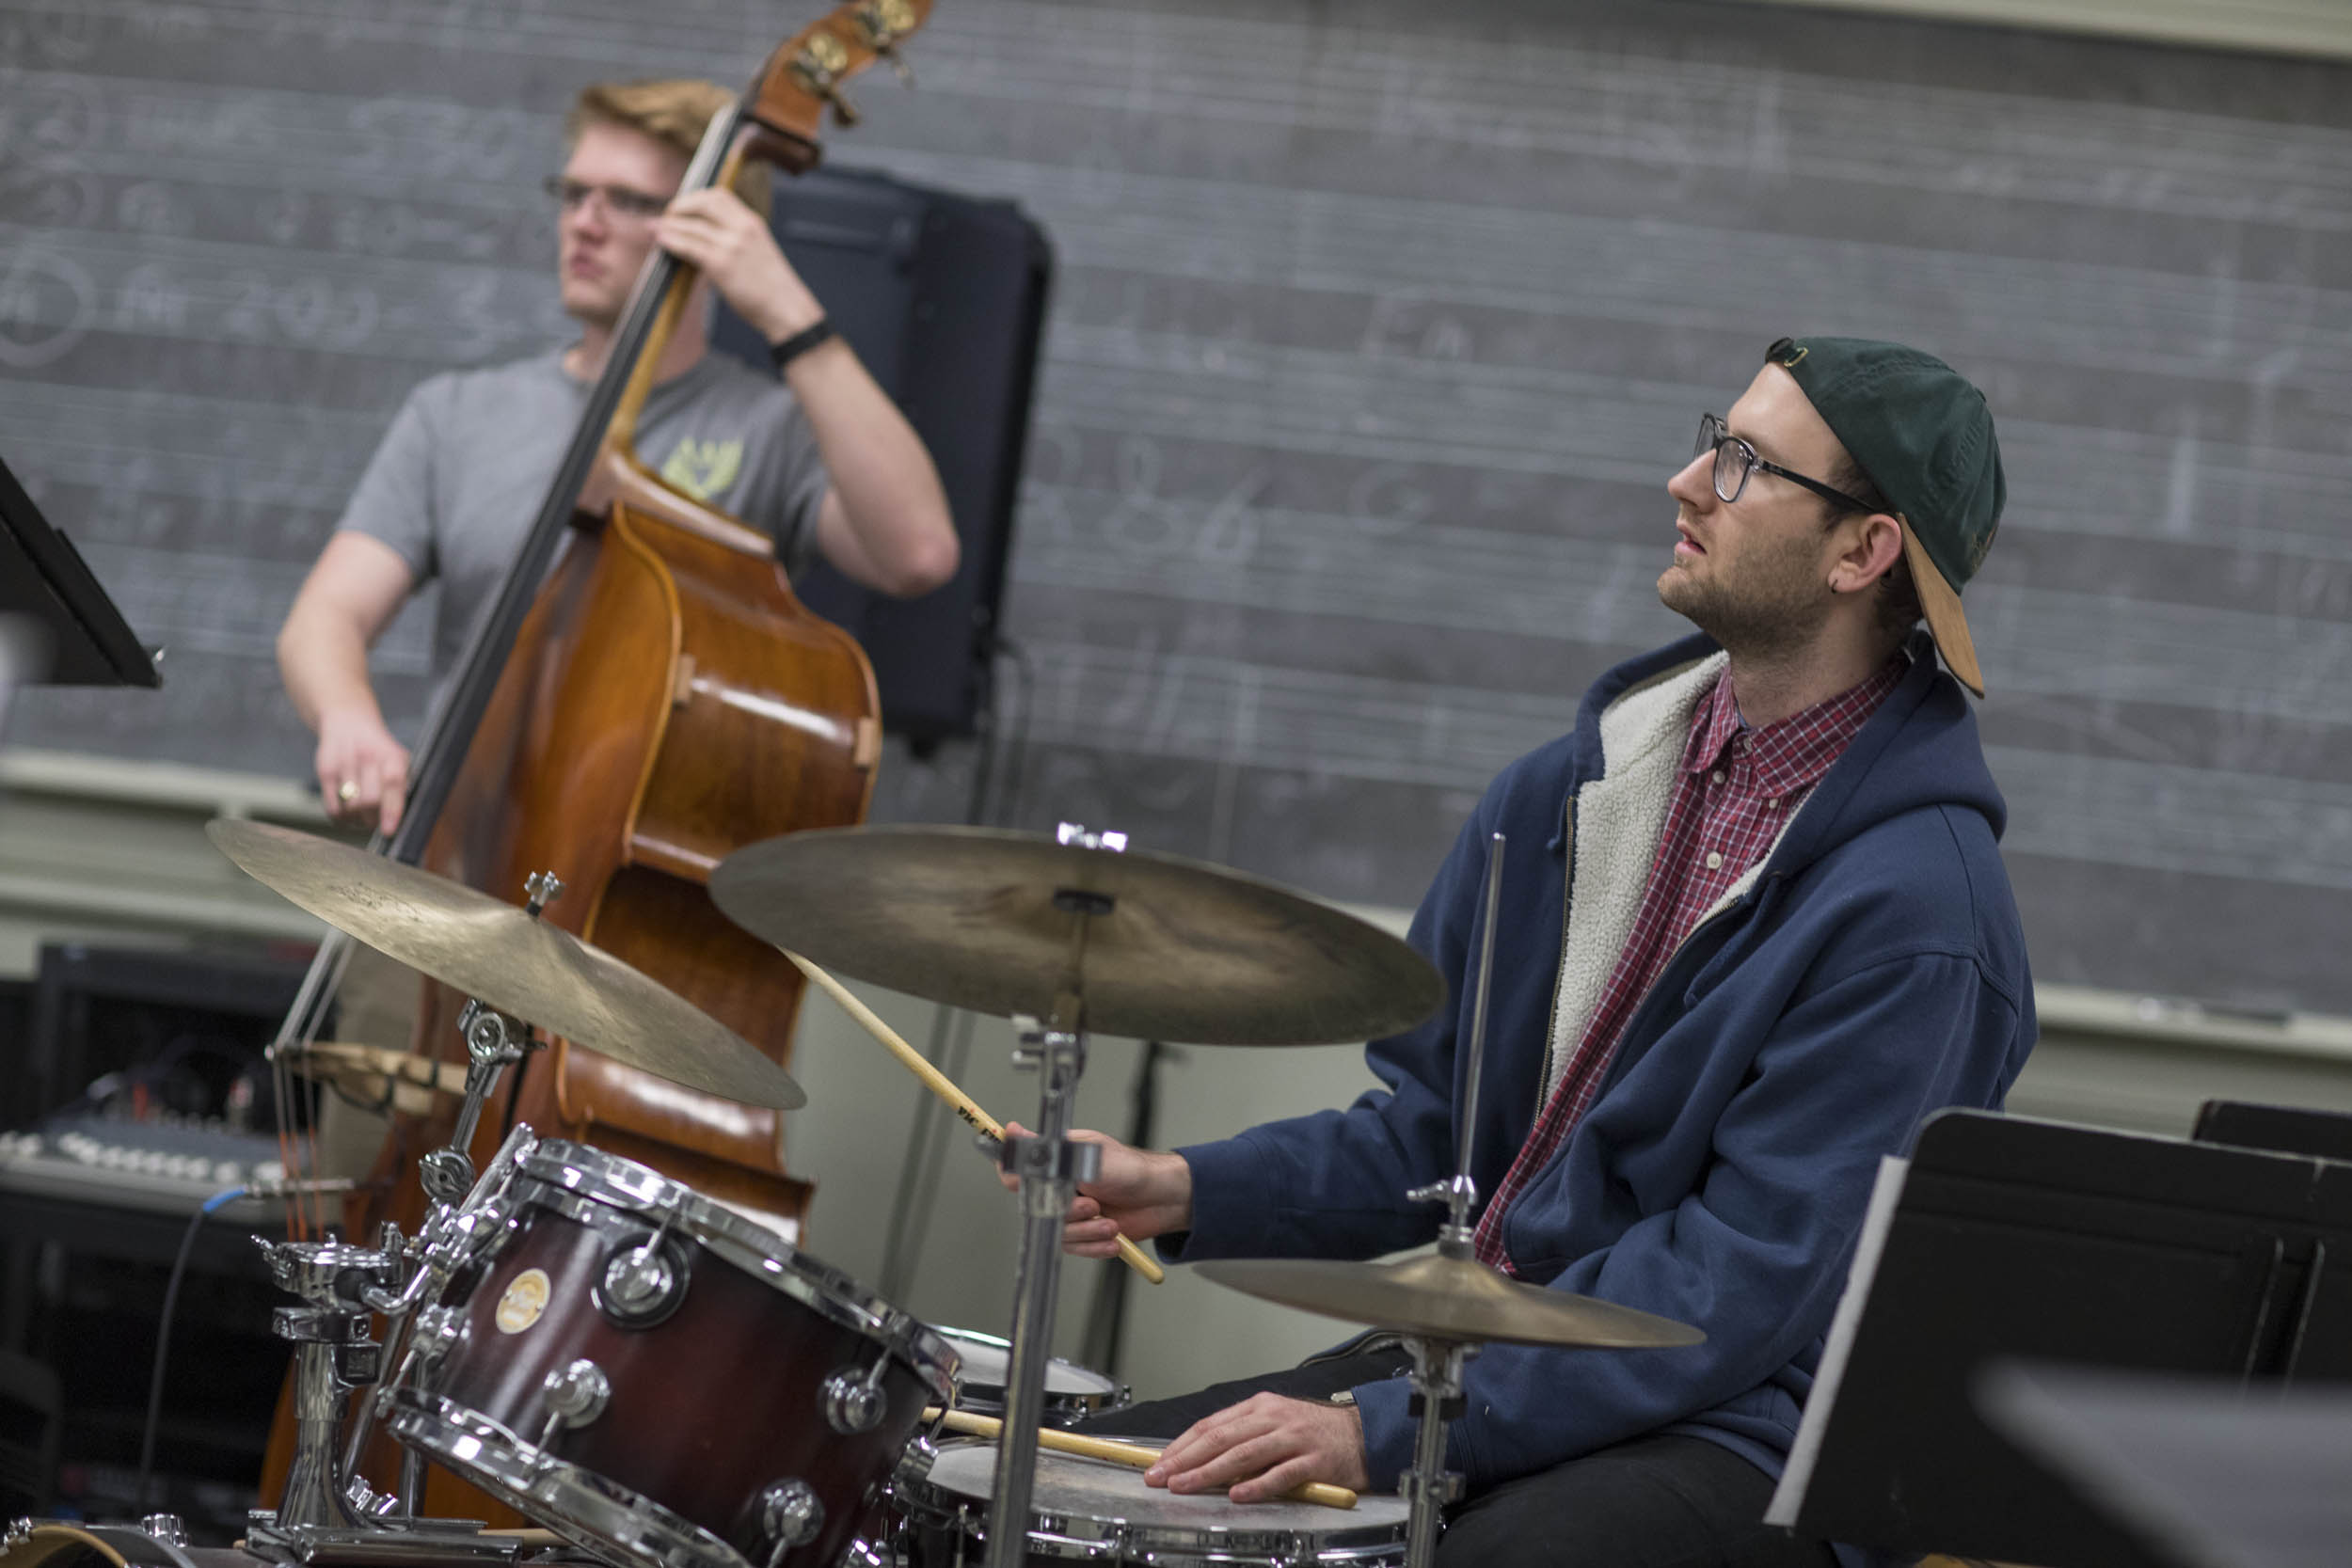 Students in the UVA Jazz Ensemble rehearsed in Old Cabell Hall on Thursday night. (Photos by Sanjay Suchak, University Communications)